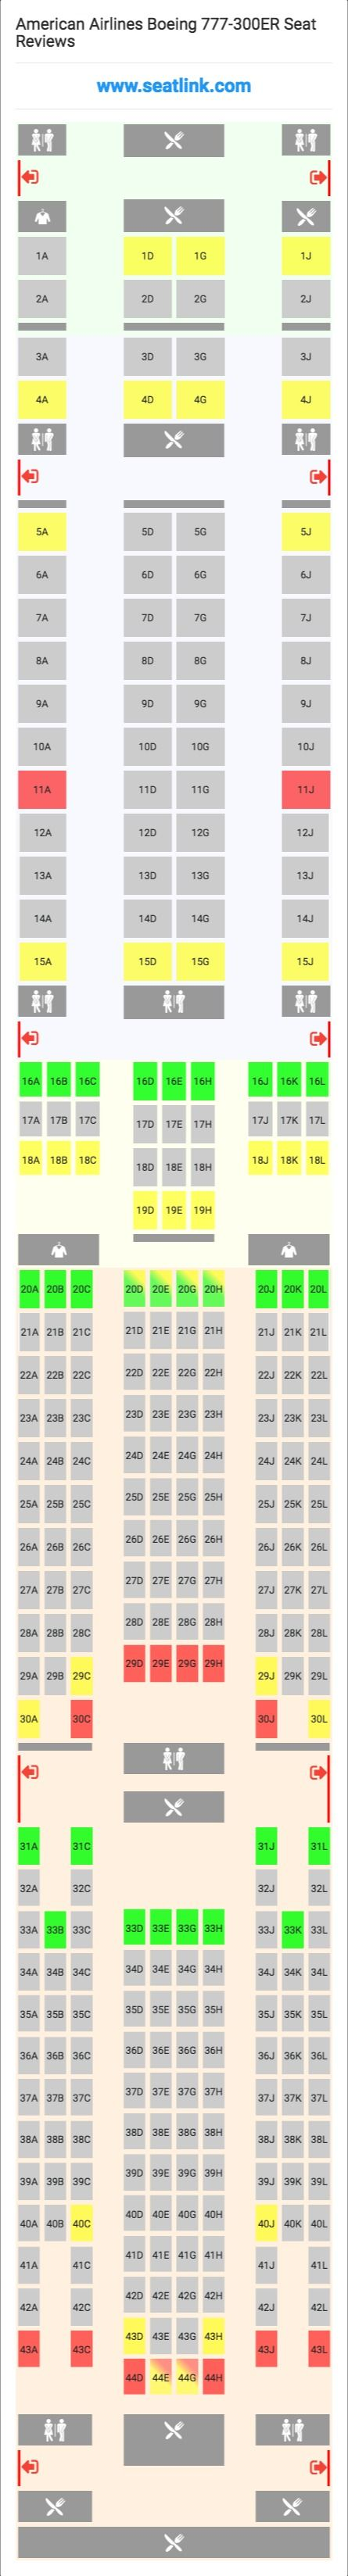 American Airlines Boeing 777-300ER (77W) Seat Map